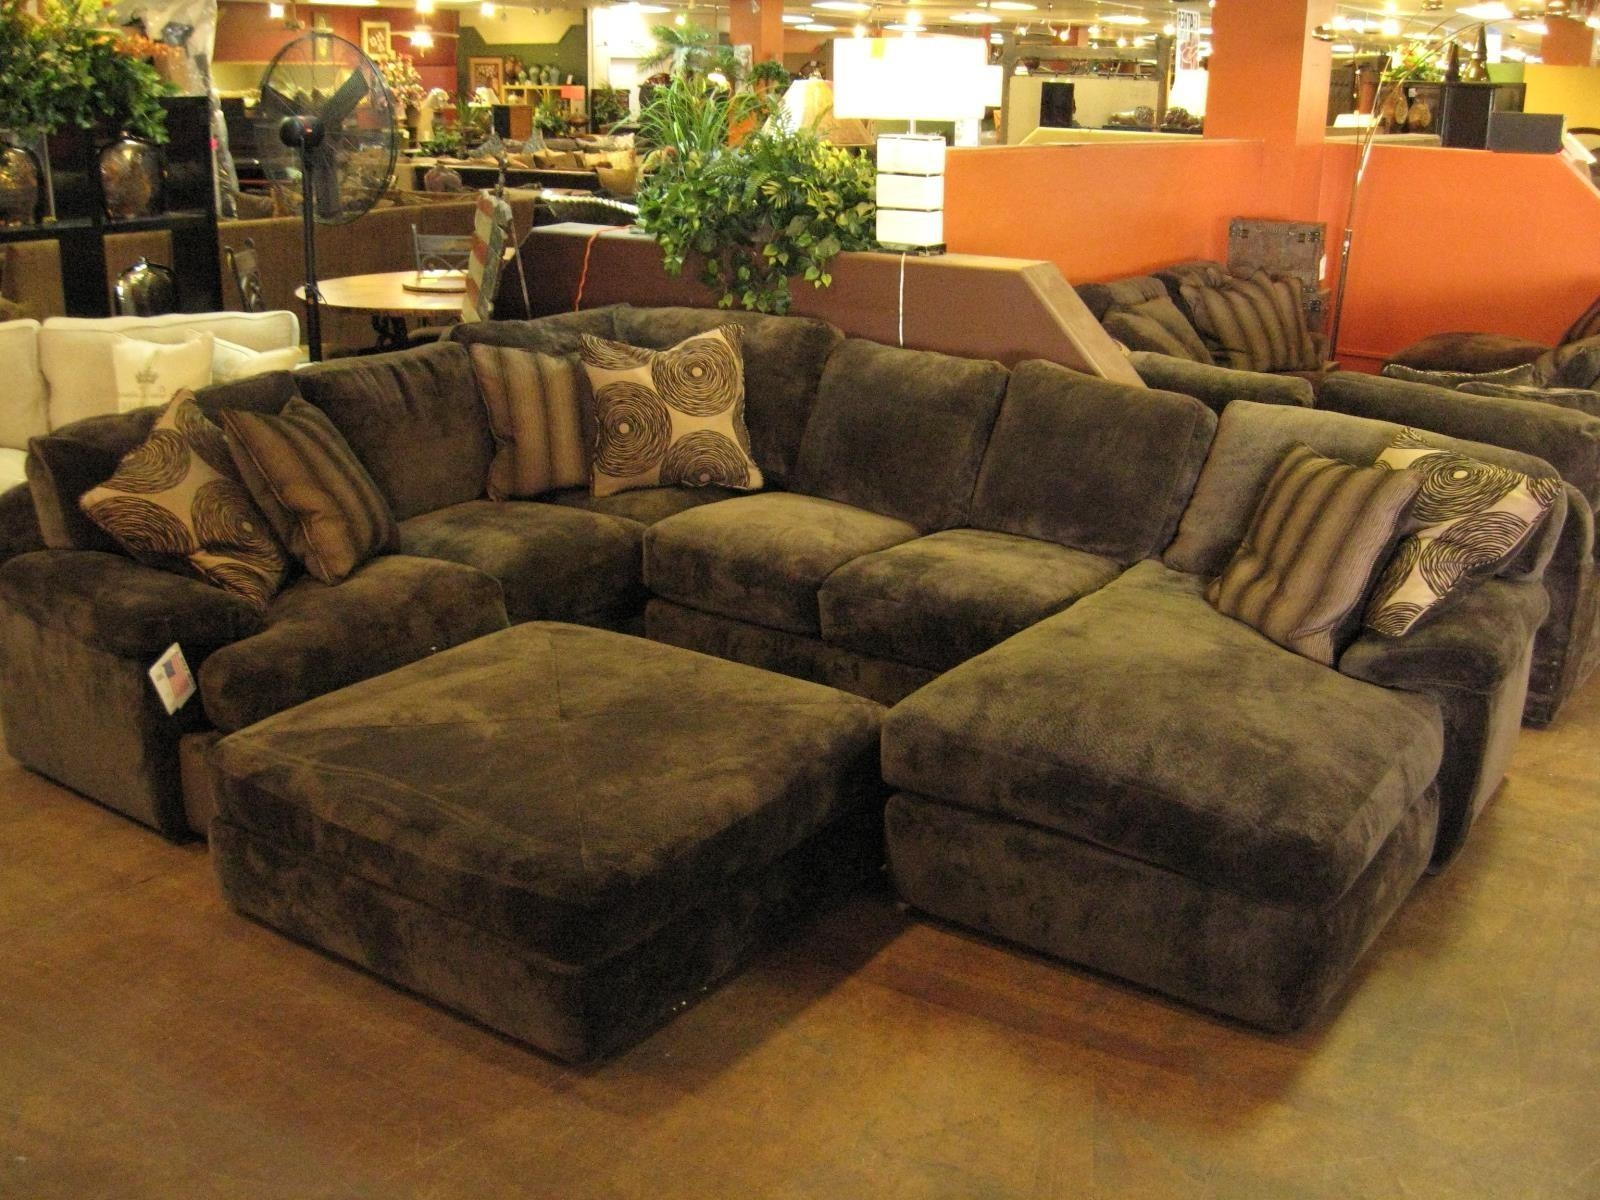 Sofas Center : Sectional Sofa With Oversized Ottoman Home Design Intended For Sectional Sofa With Oversized Ottoman (Image 18 of 20)